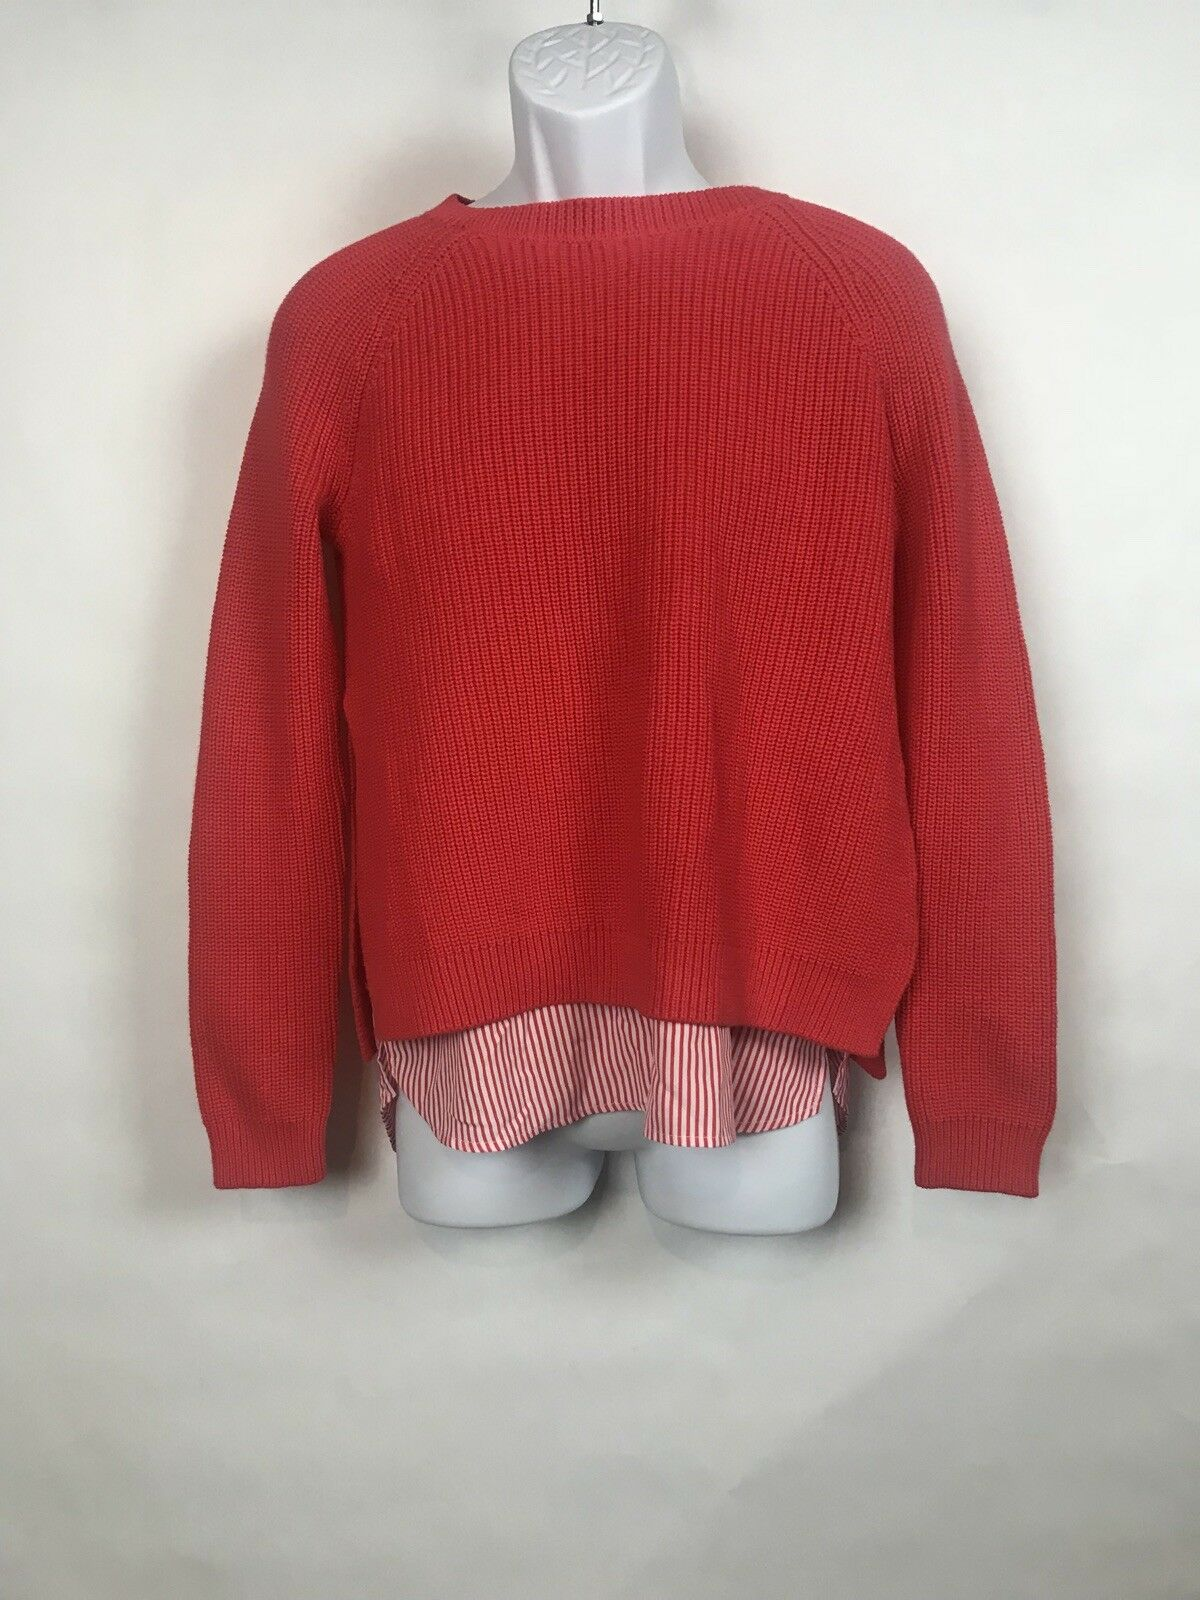 Ralph Lauren womens Sweater Medium Coral Layered Cotton New with tags NWT